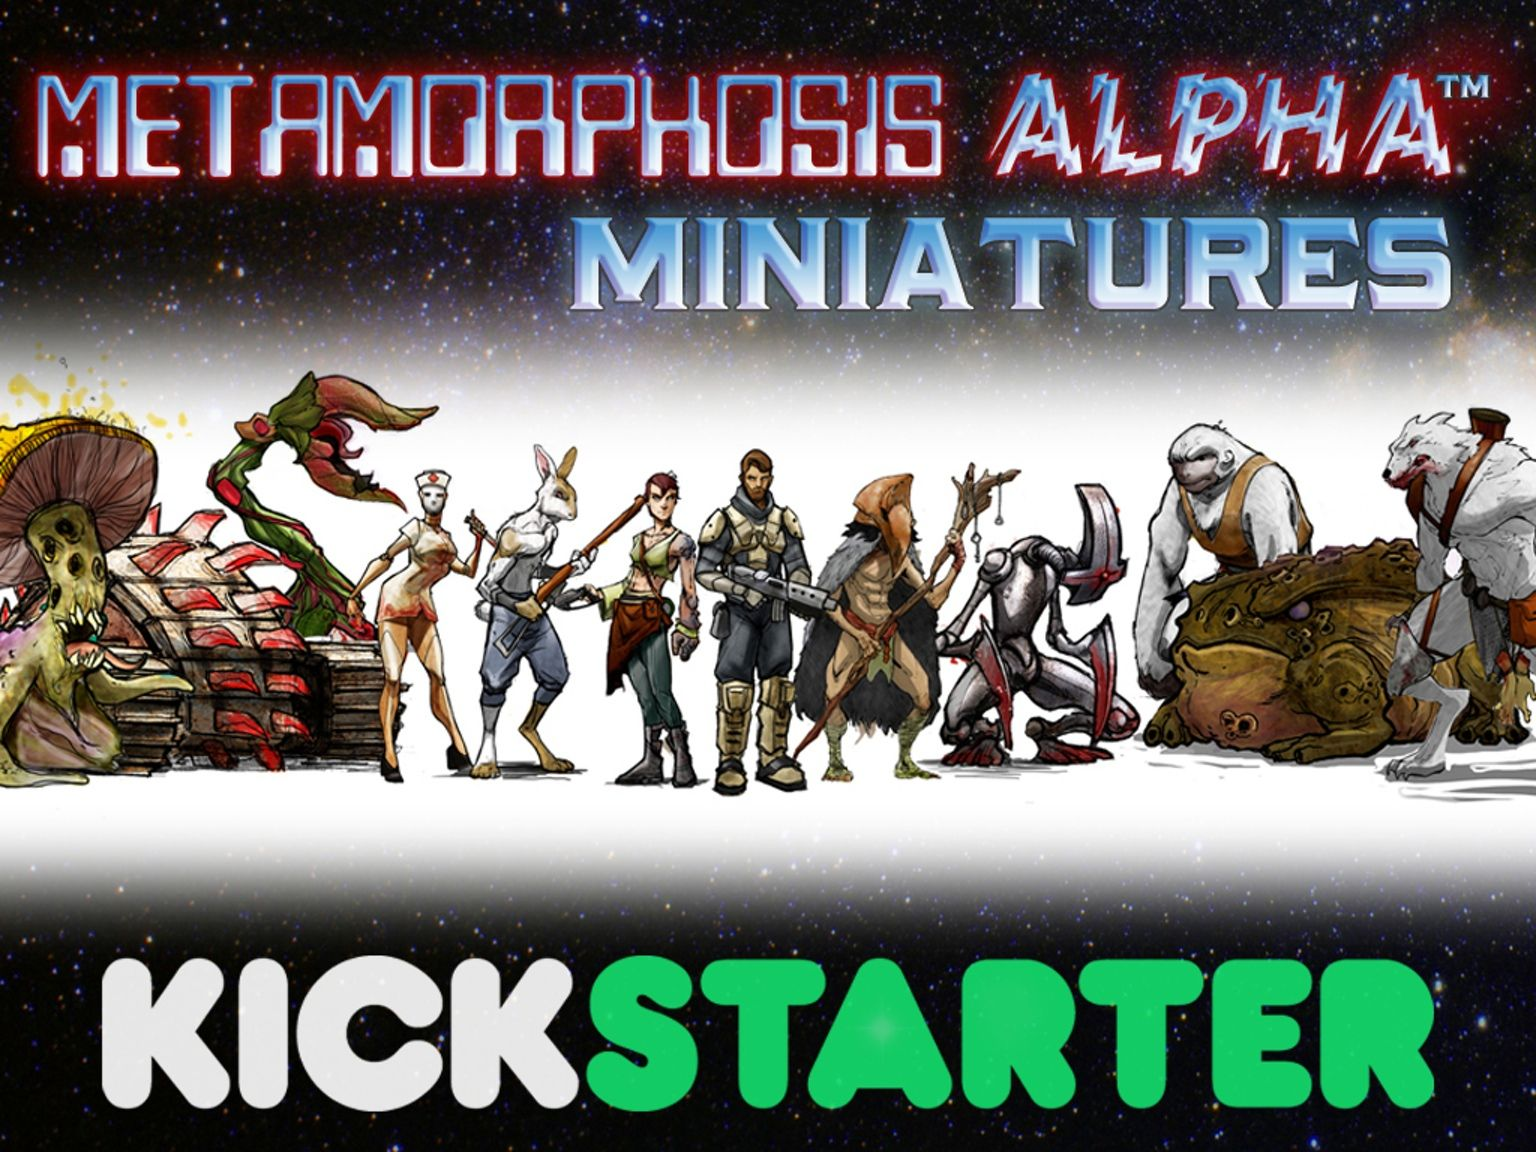 28mm Miniatures for the First Science Fiction Role-Playing Game